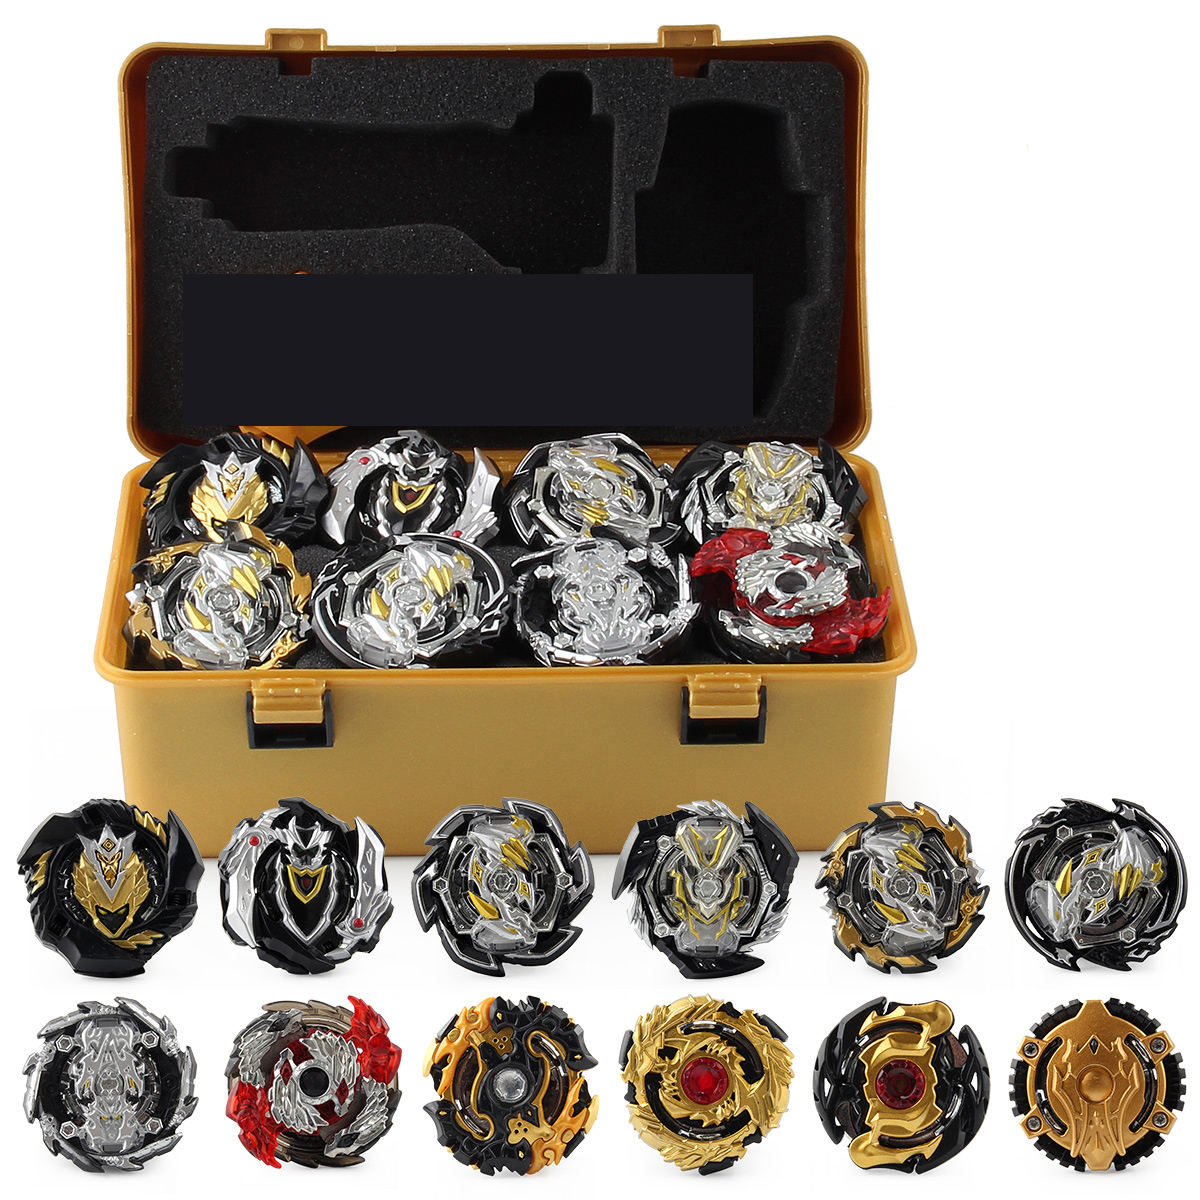 Gold Edition Gyro Set Beyblades Toolbox Assembly Battle Bayblades Combat Gyro Launcher Storage Box Toy Stadium Arena